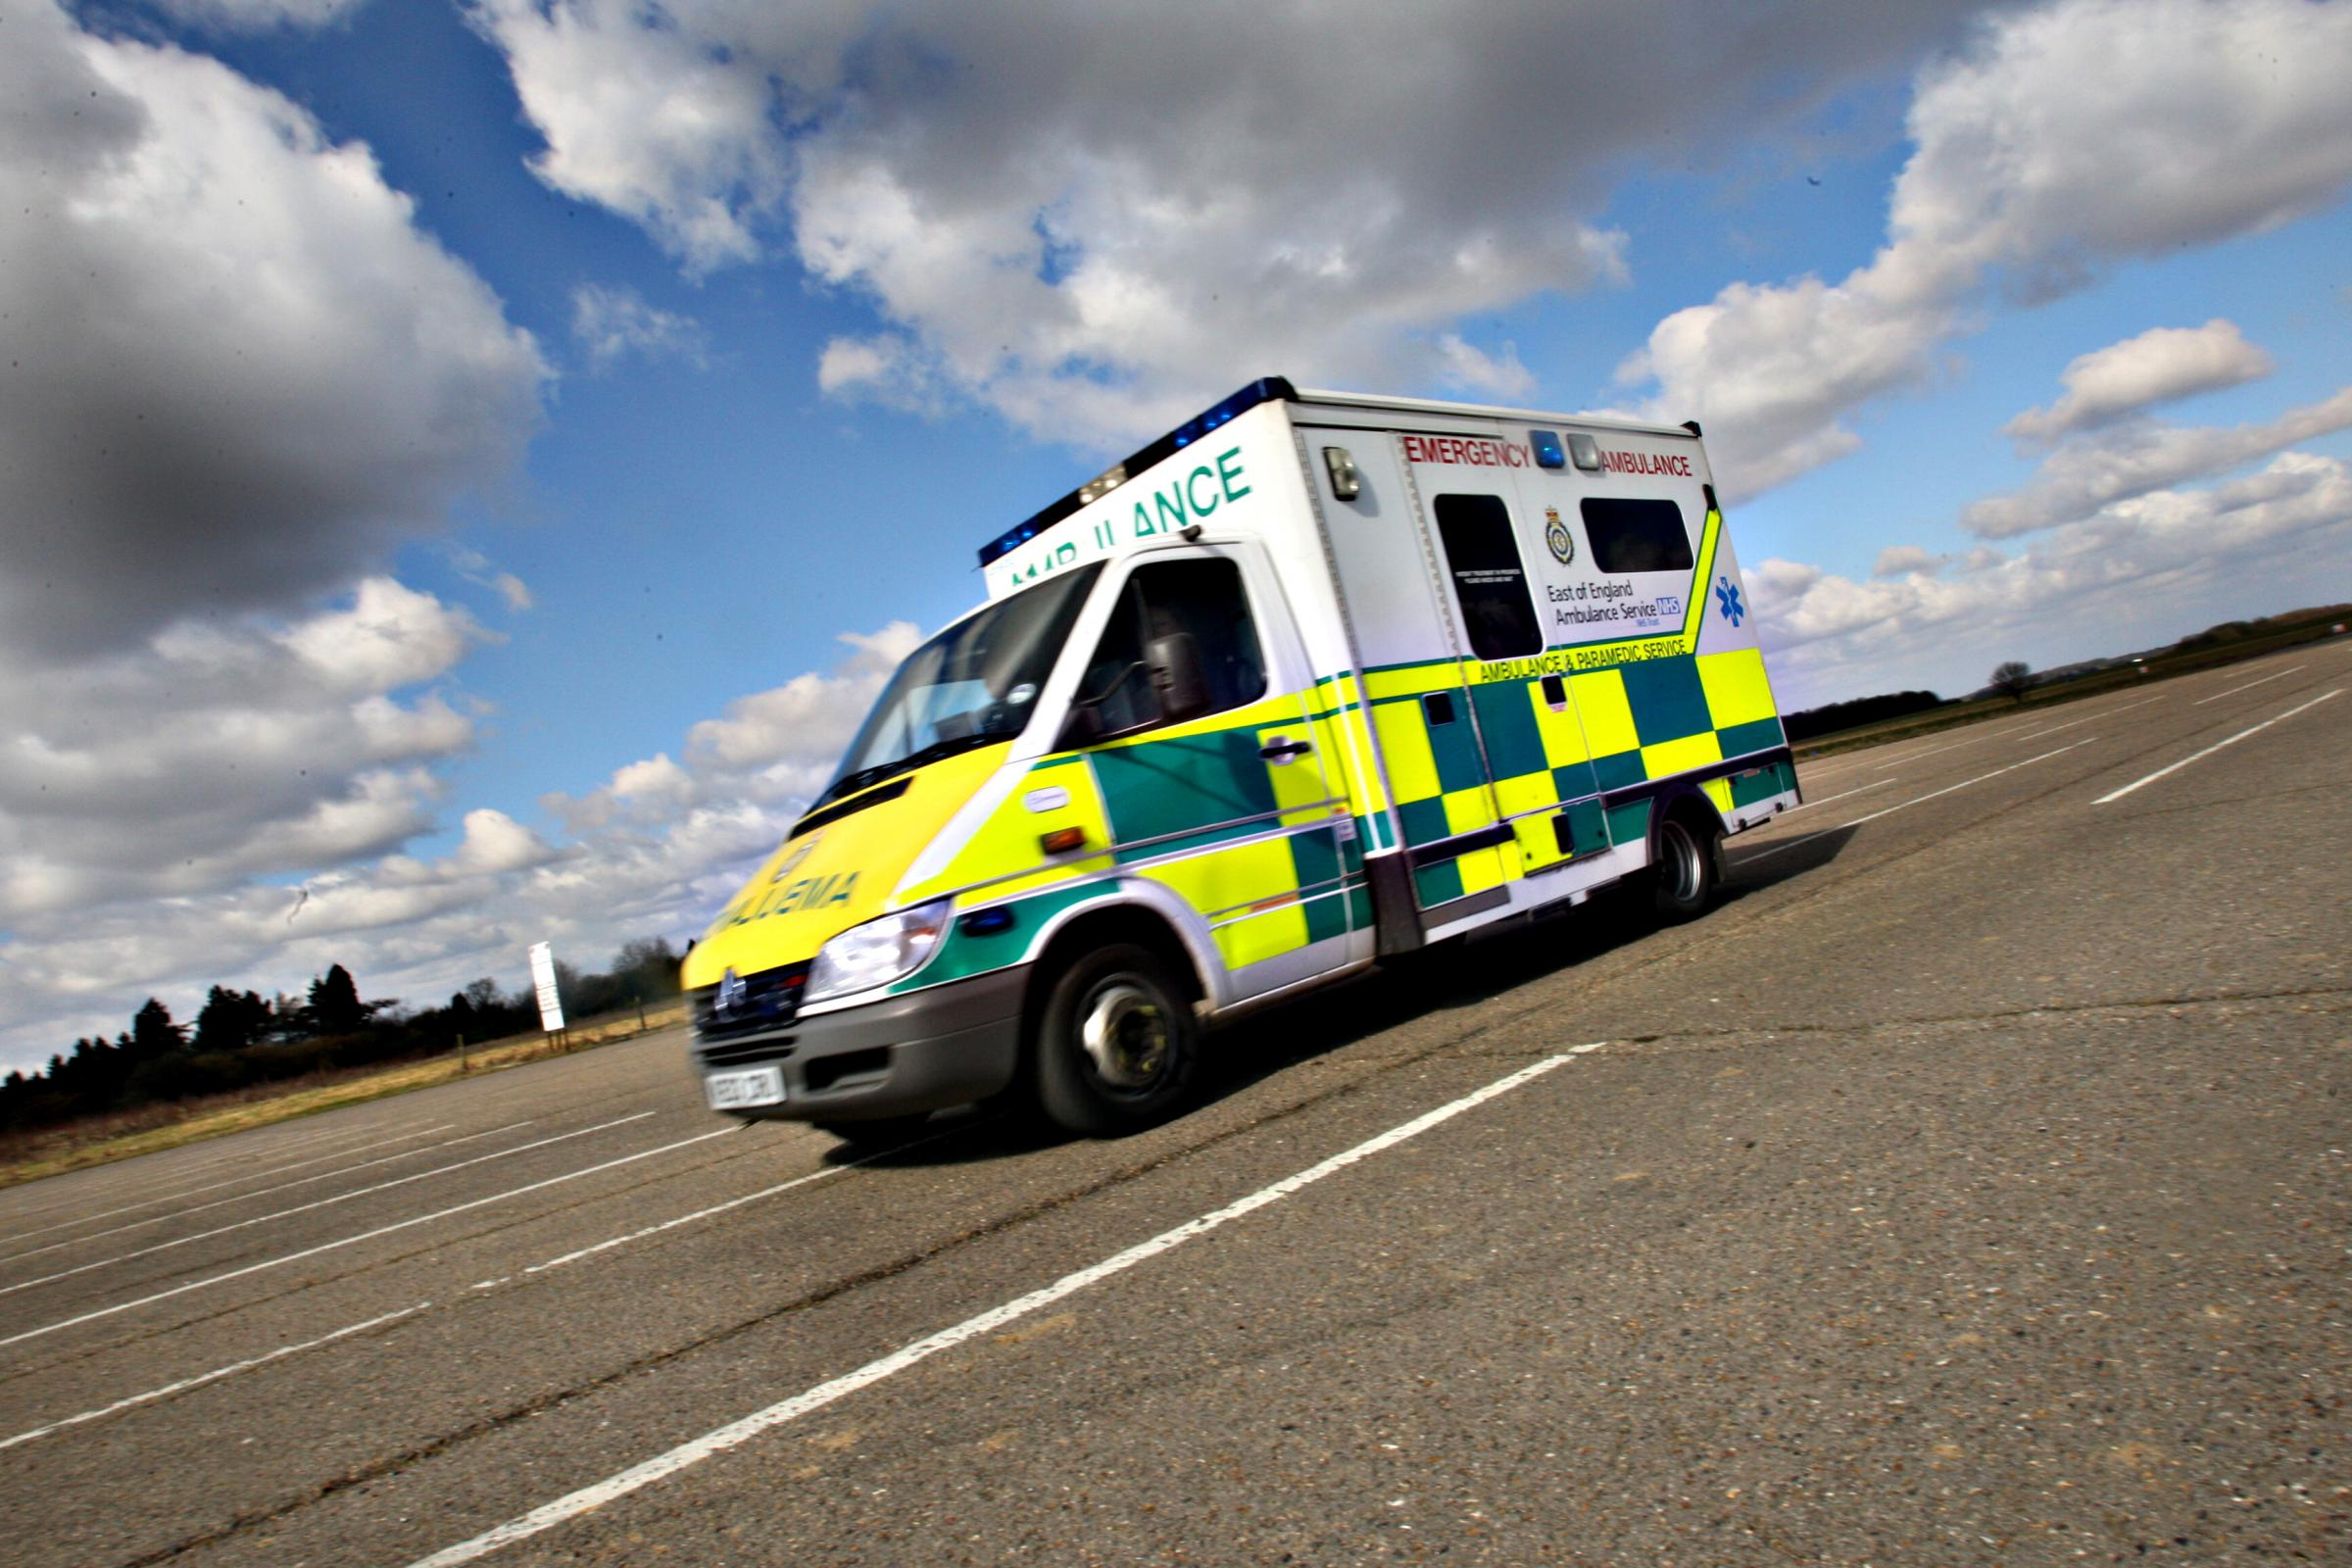 Increase in ambulance calls over Bank Holiday weekend